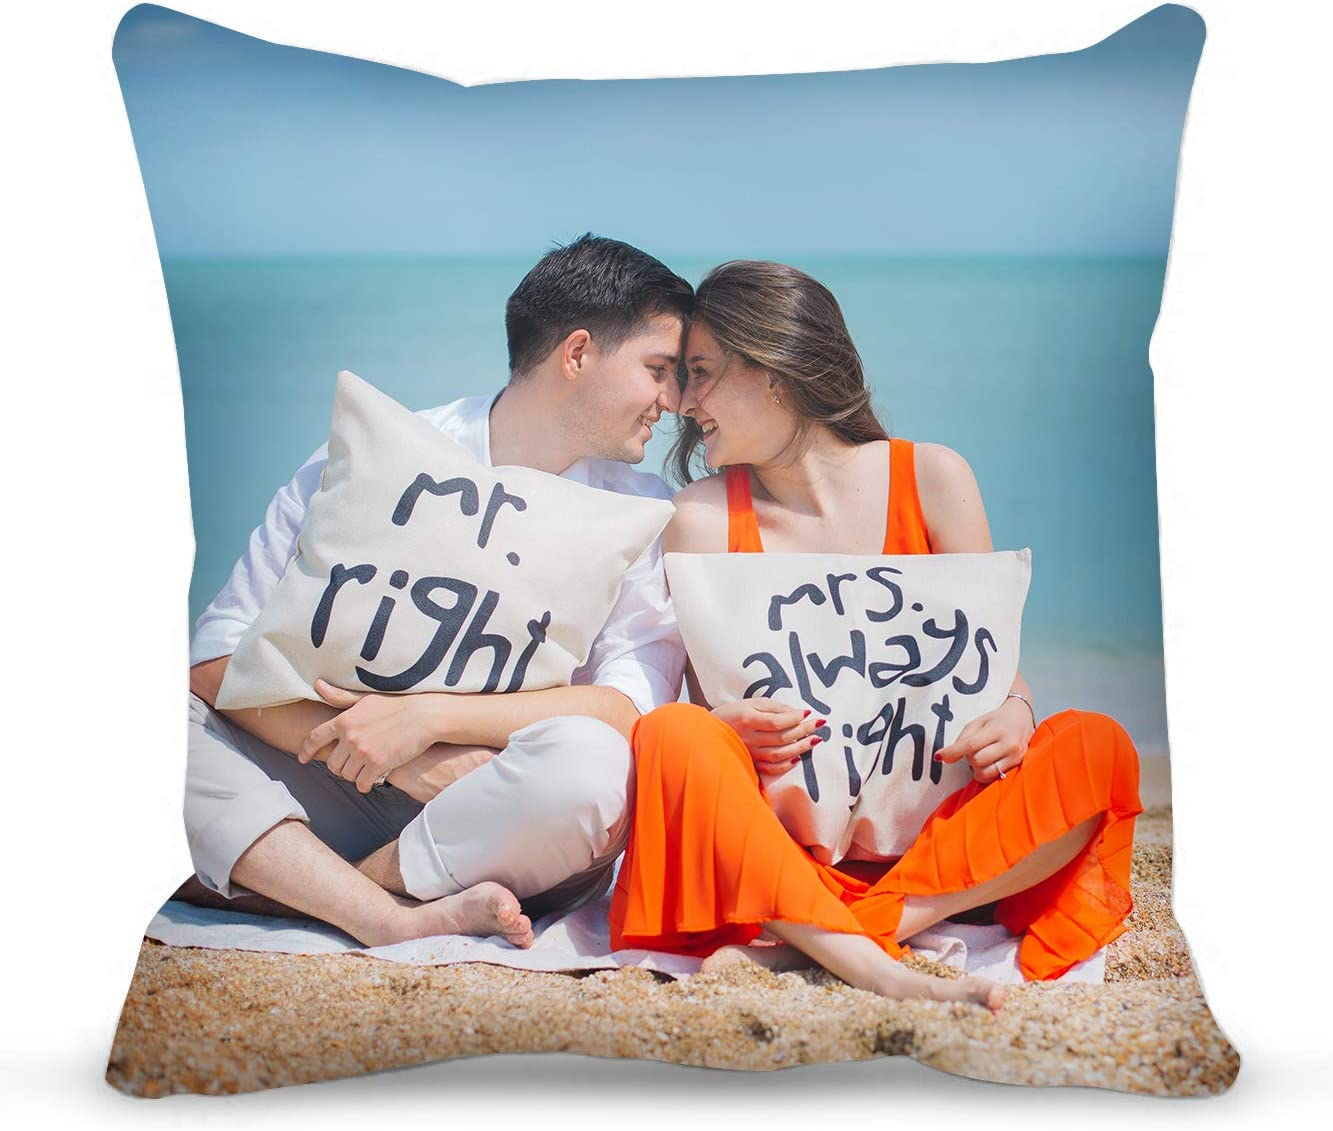 Custom Valentine s Day Decorations Pillow Covers with Insert – 18X18 Inches Custom Photo Pillow with Duplex Print Image Text – Uuniqe Birthday Gift